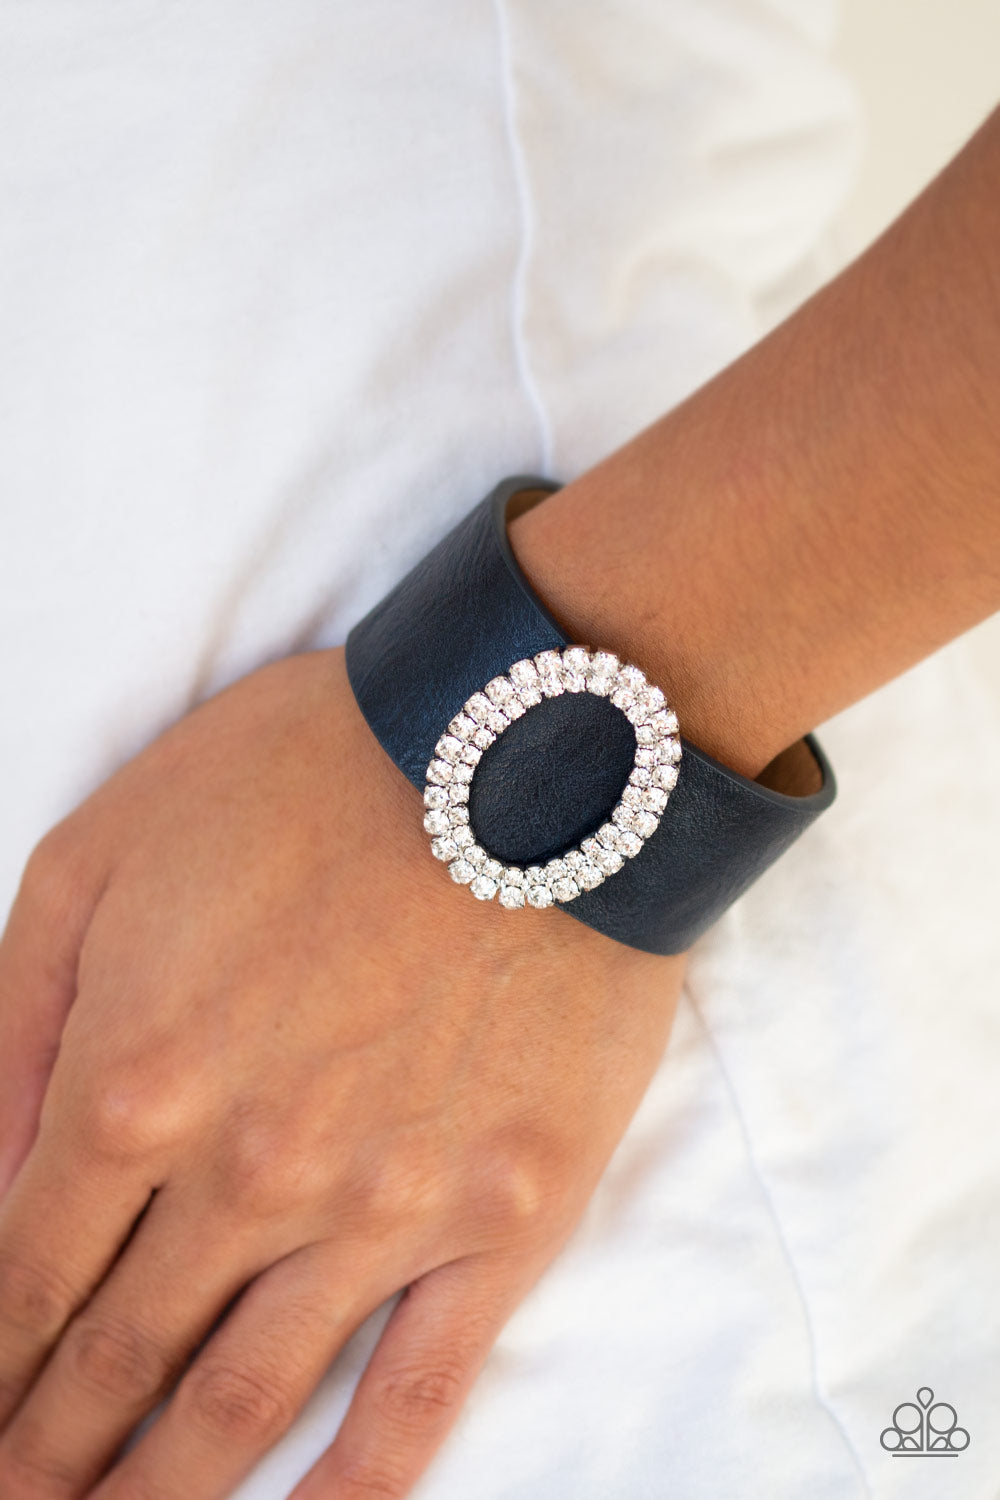 Paparazzi Accessories Center Stage Starlet - Blue Bracelets